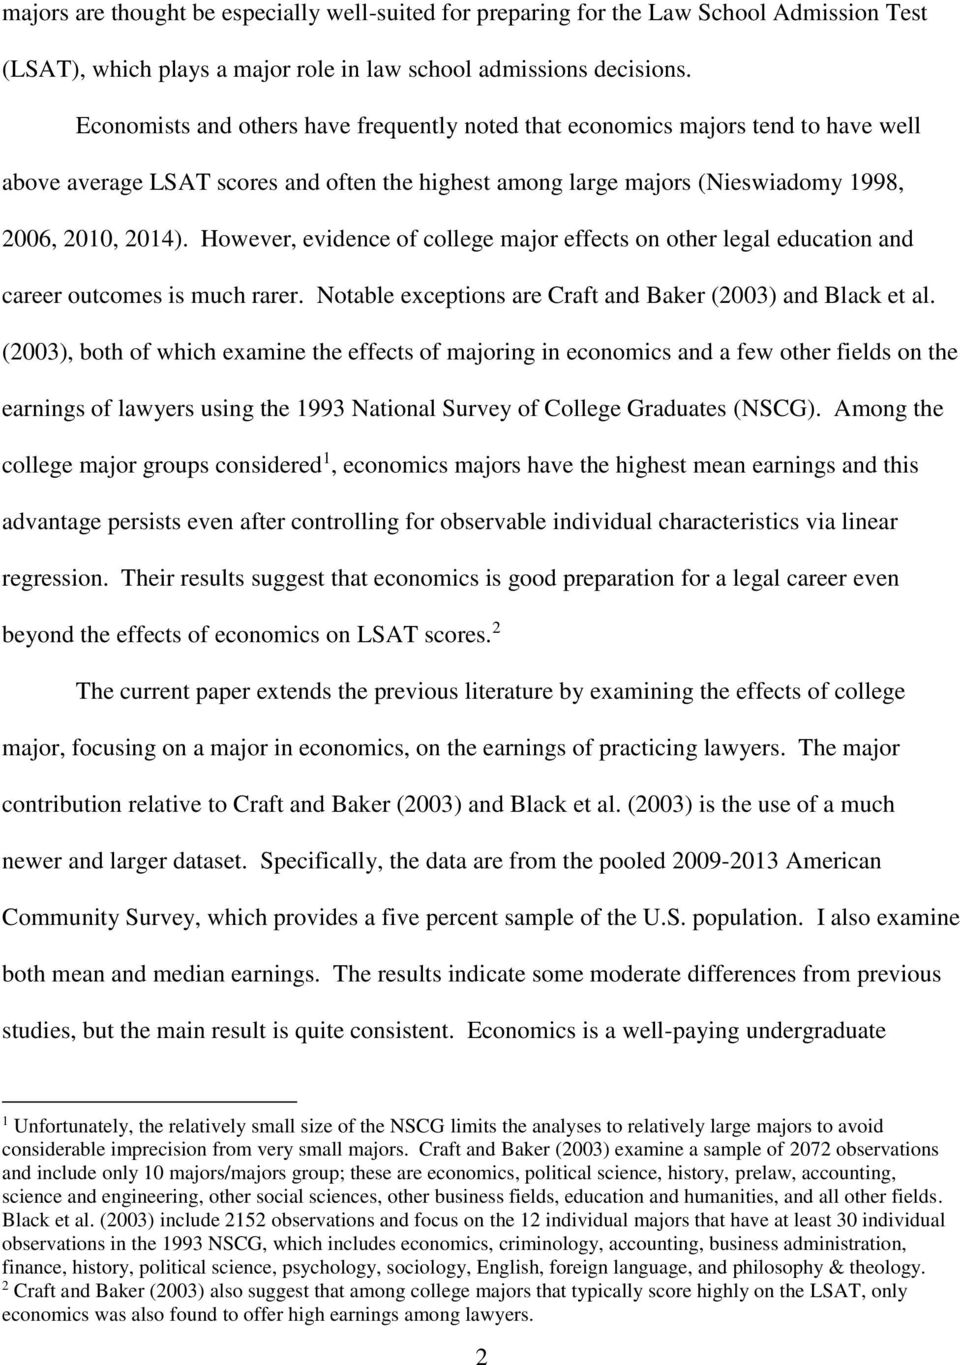 However, evidence of college major effects on other legal education and career outcomes is much rarer. Notable exceptions are Craft and Baker (2003) and Black et al.